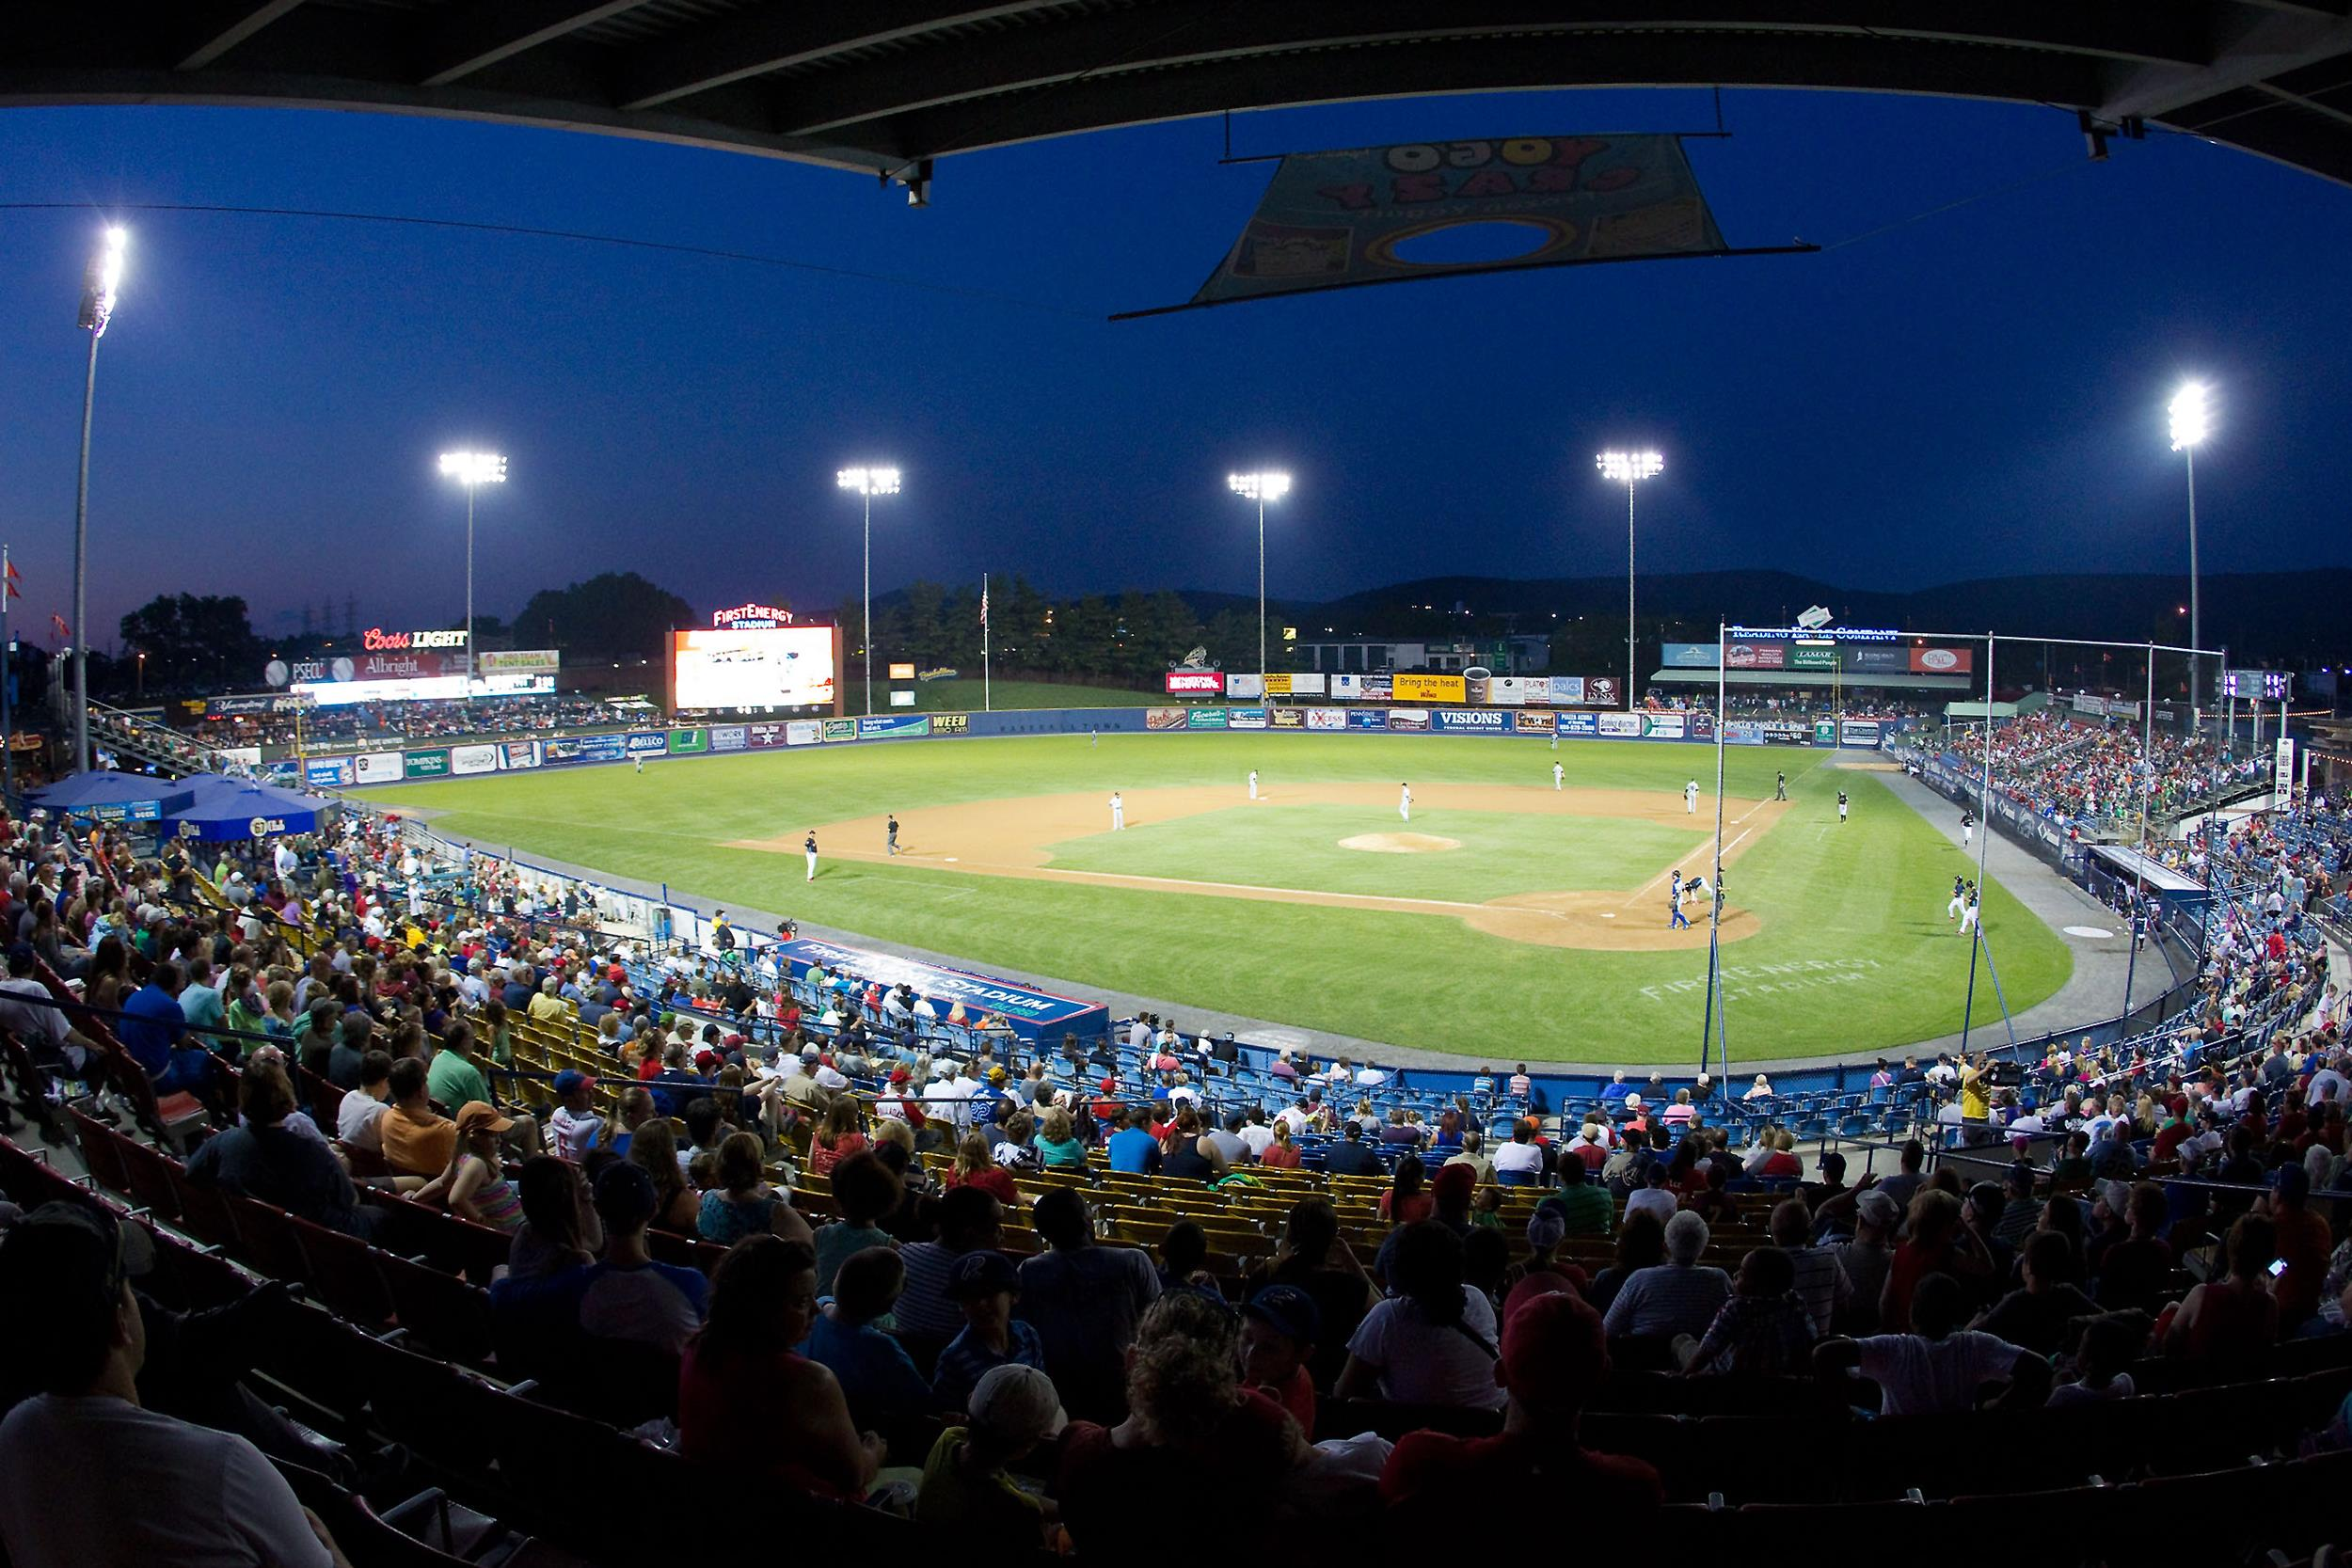 The Akron Rubber Ducks and the Reading Fightin Phils